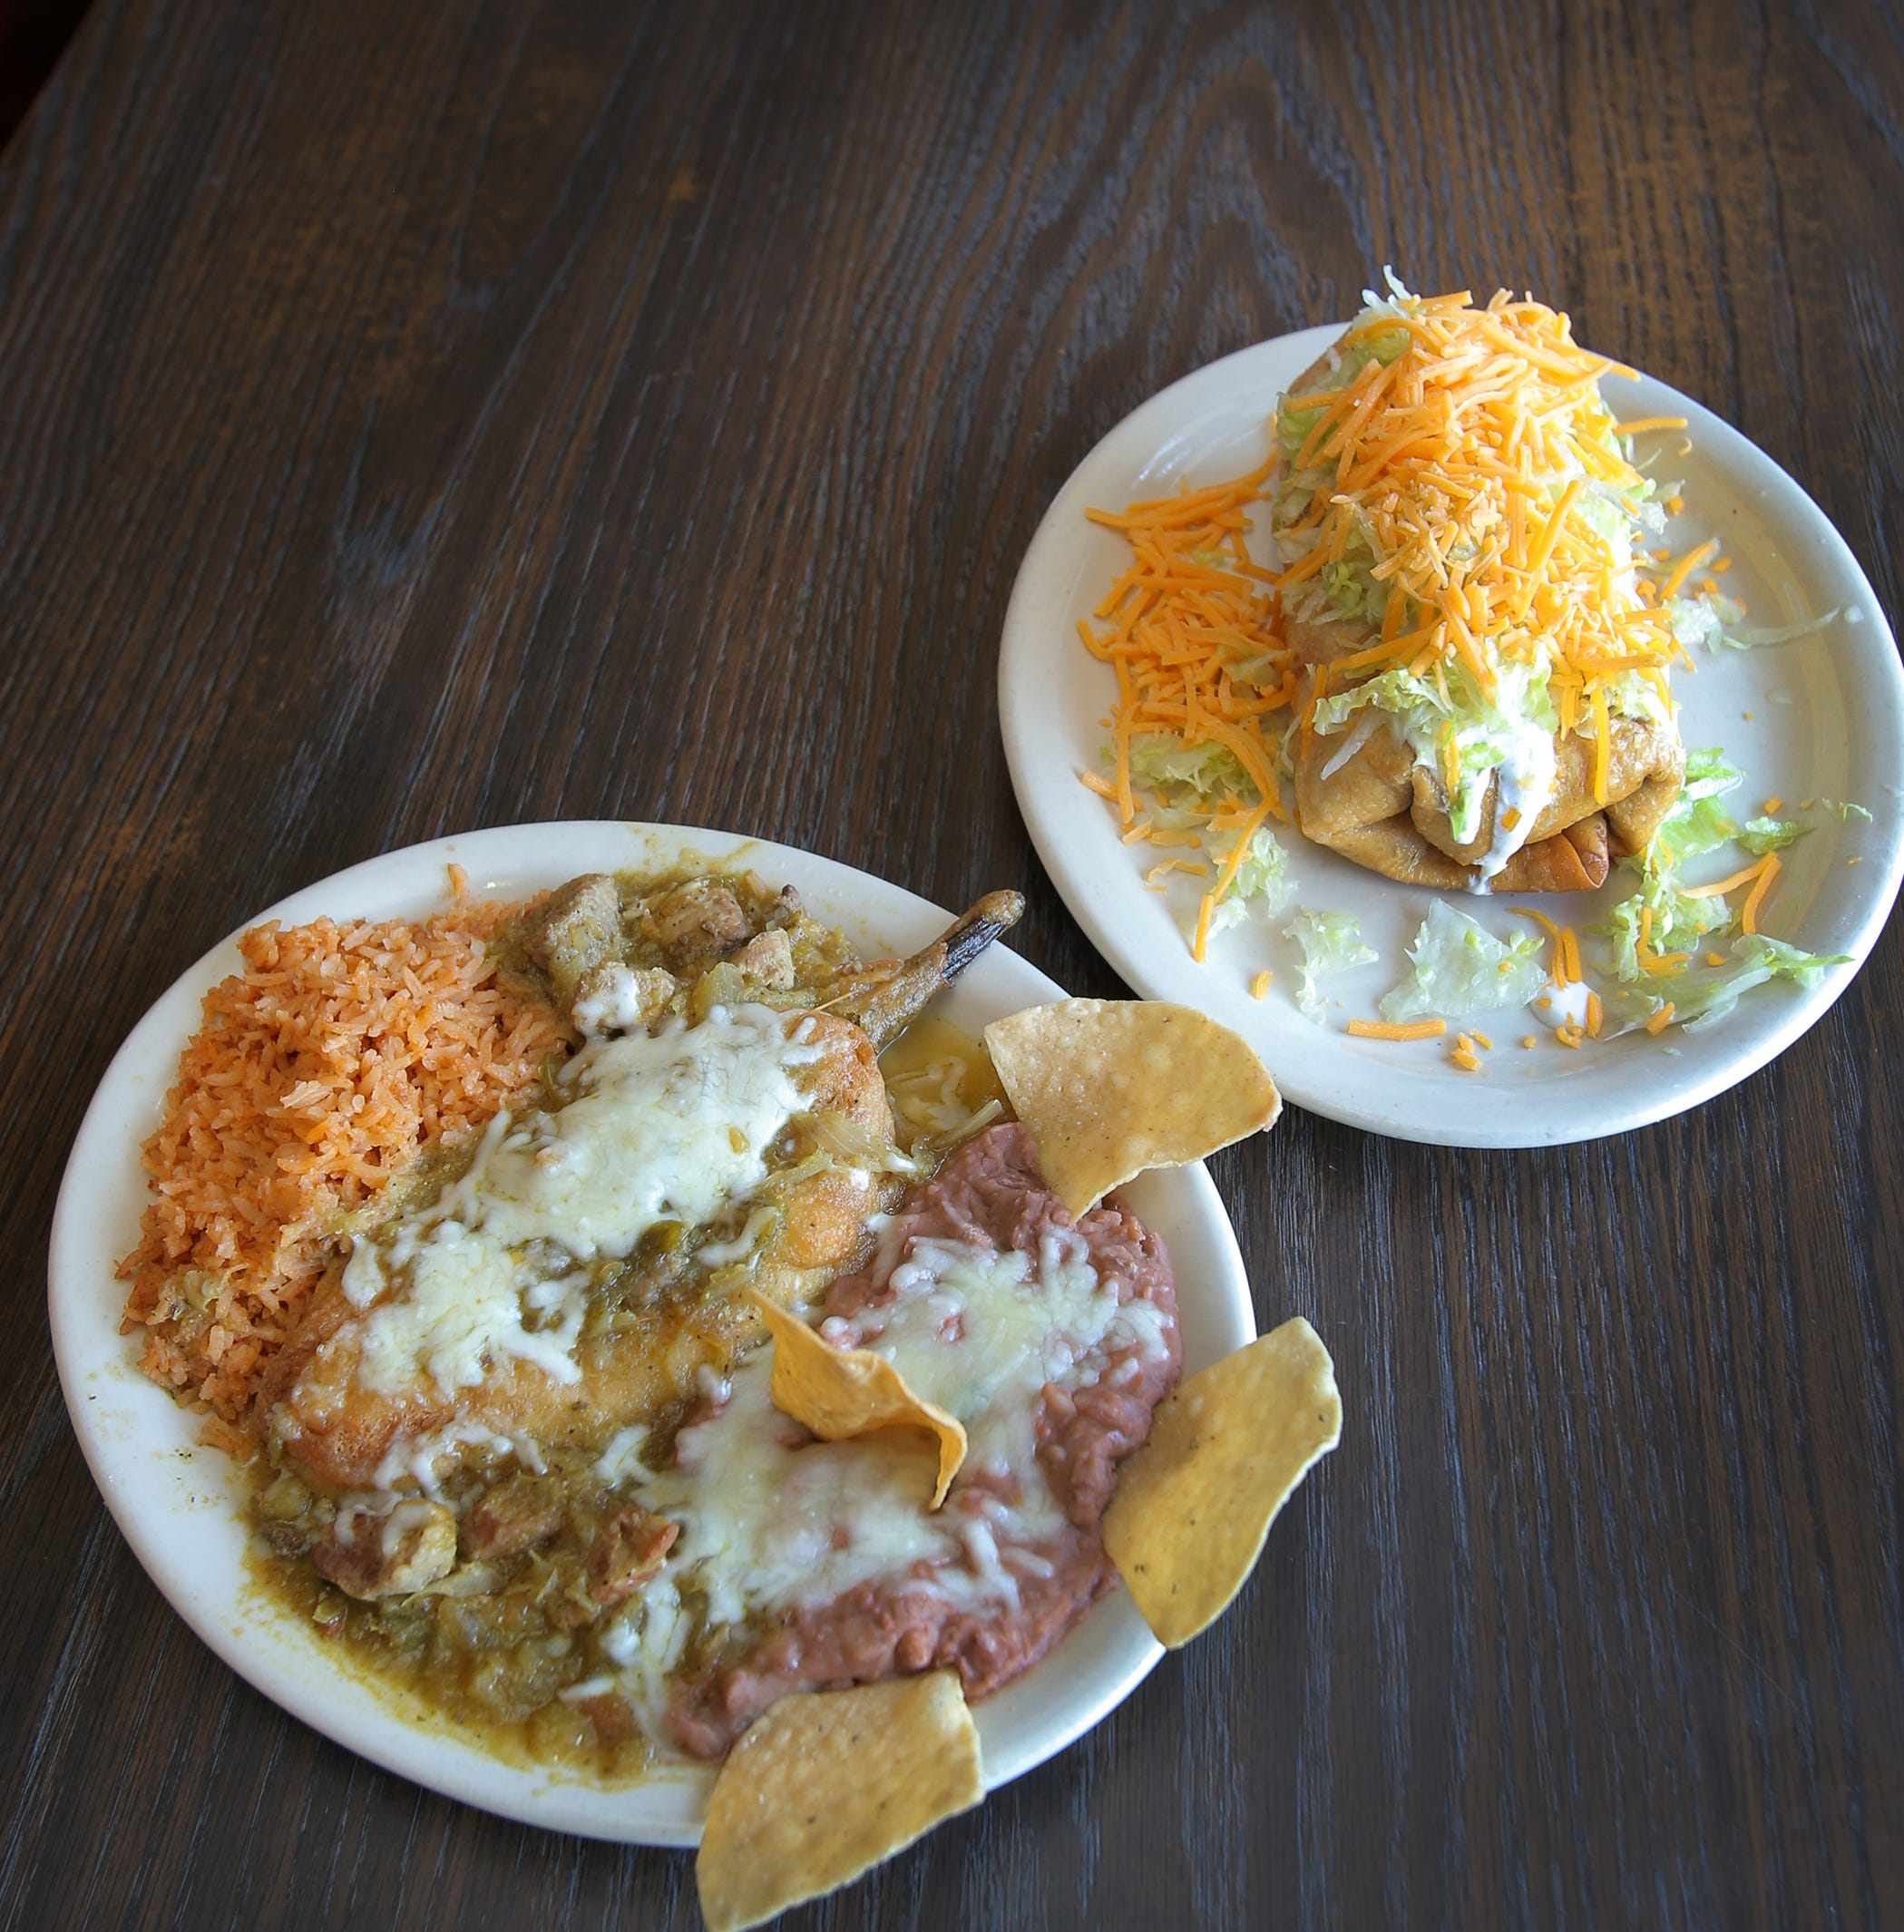 Restaurant review: Somis Cafe lives up to its reputation for serving great Mexican food